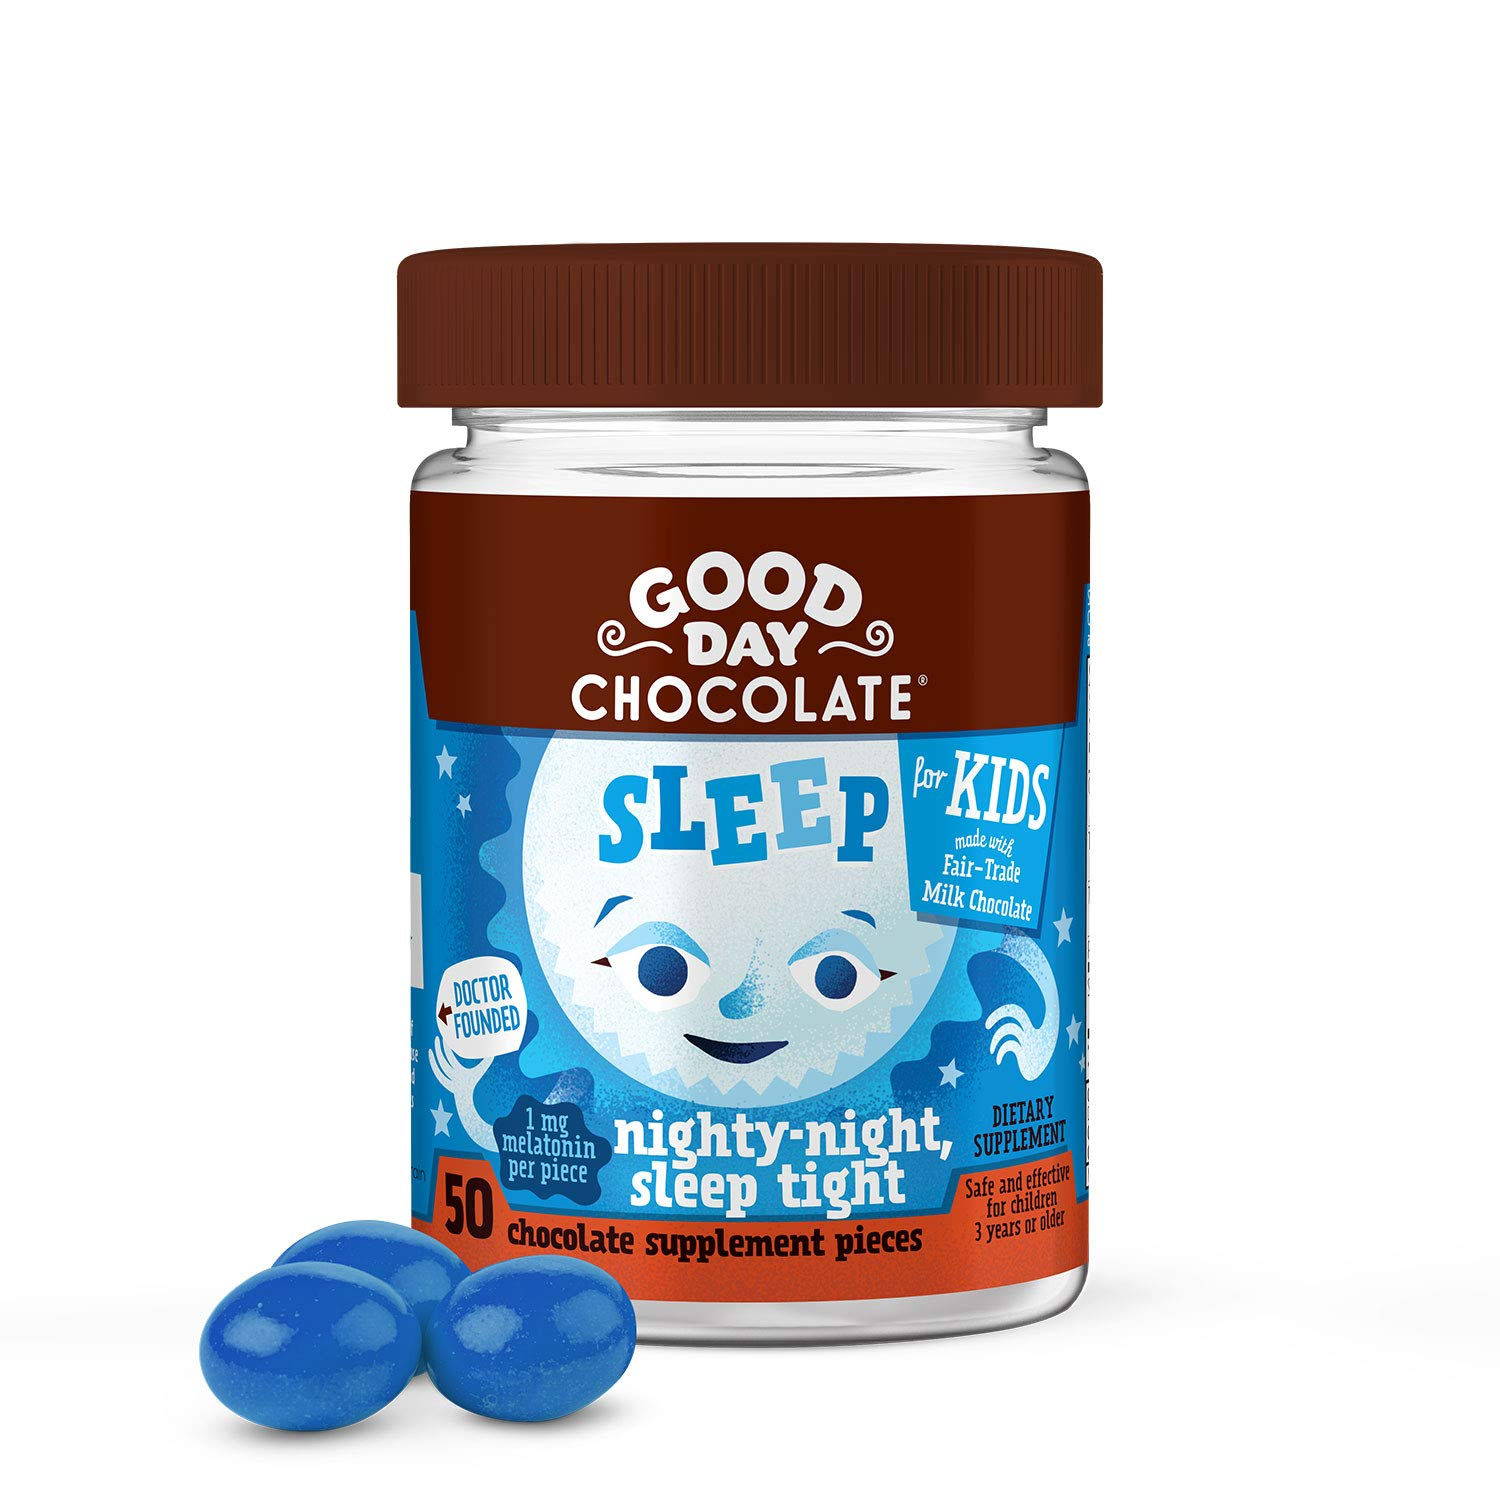 Good Day Chocolate Melatonin for Kids Natural Kids Sleep Aid Supplement (50 Count)